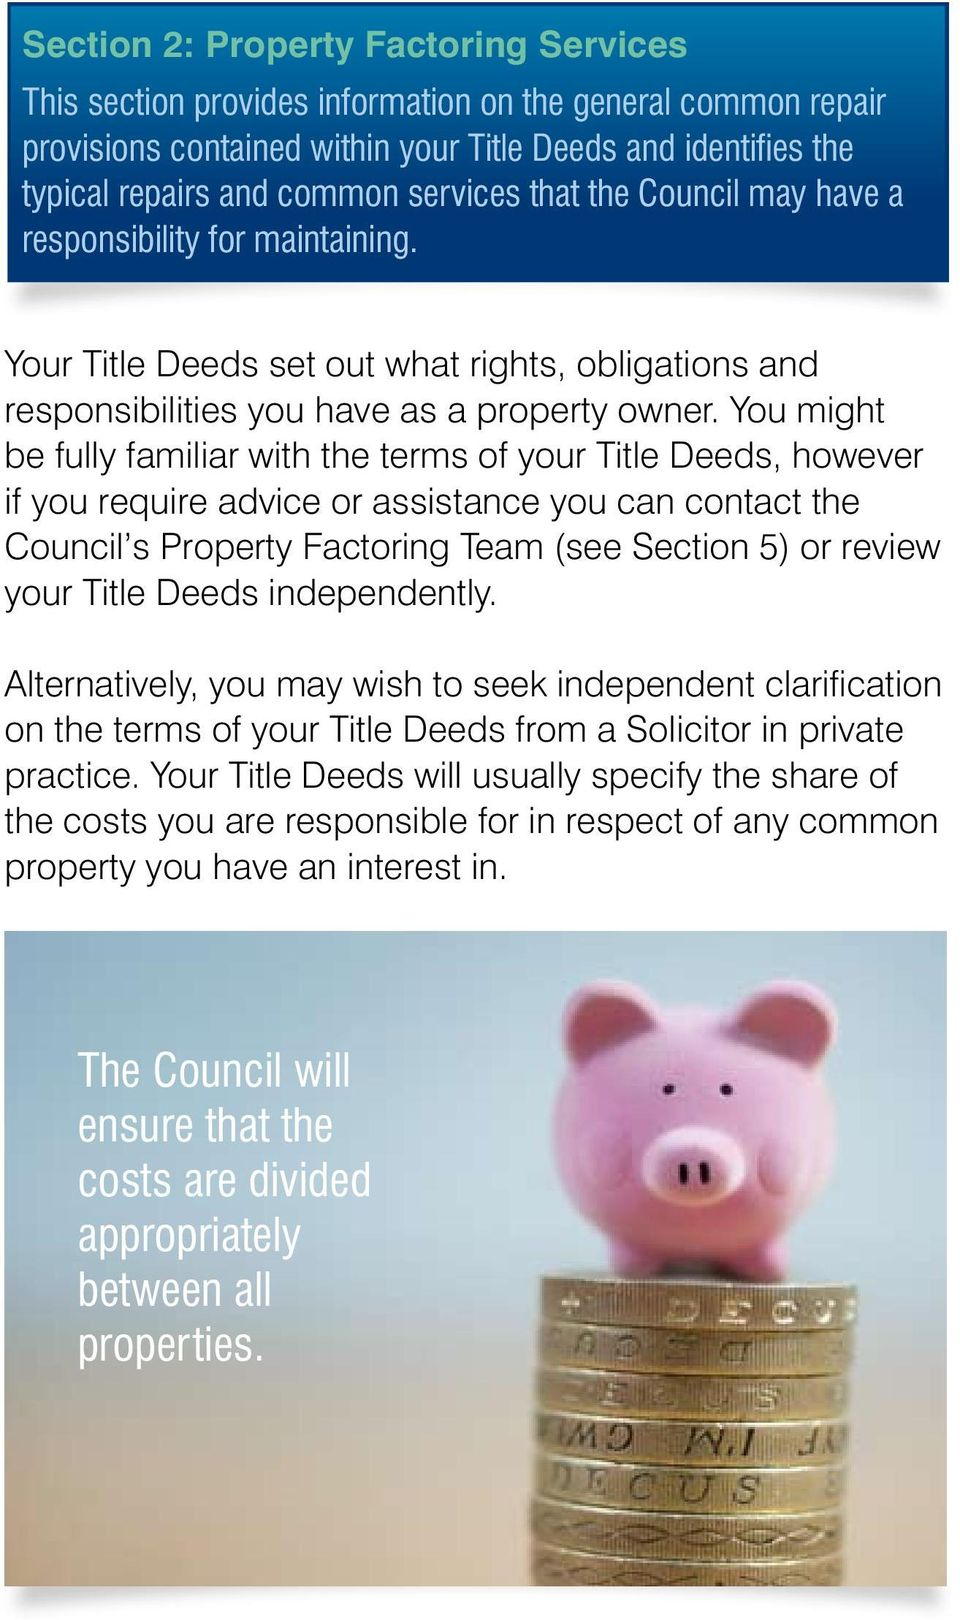 You might be fully familiar with the terms of your Title Deeds, however if you require advice or assistance you can contact the Council s Property Factoring Team (see Section 5) or review your Title